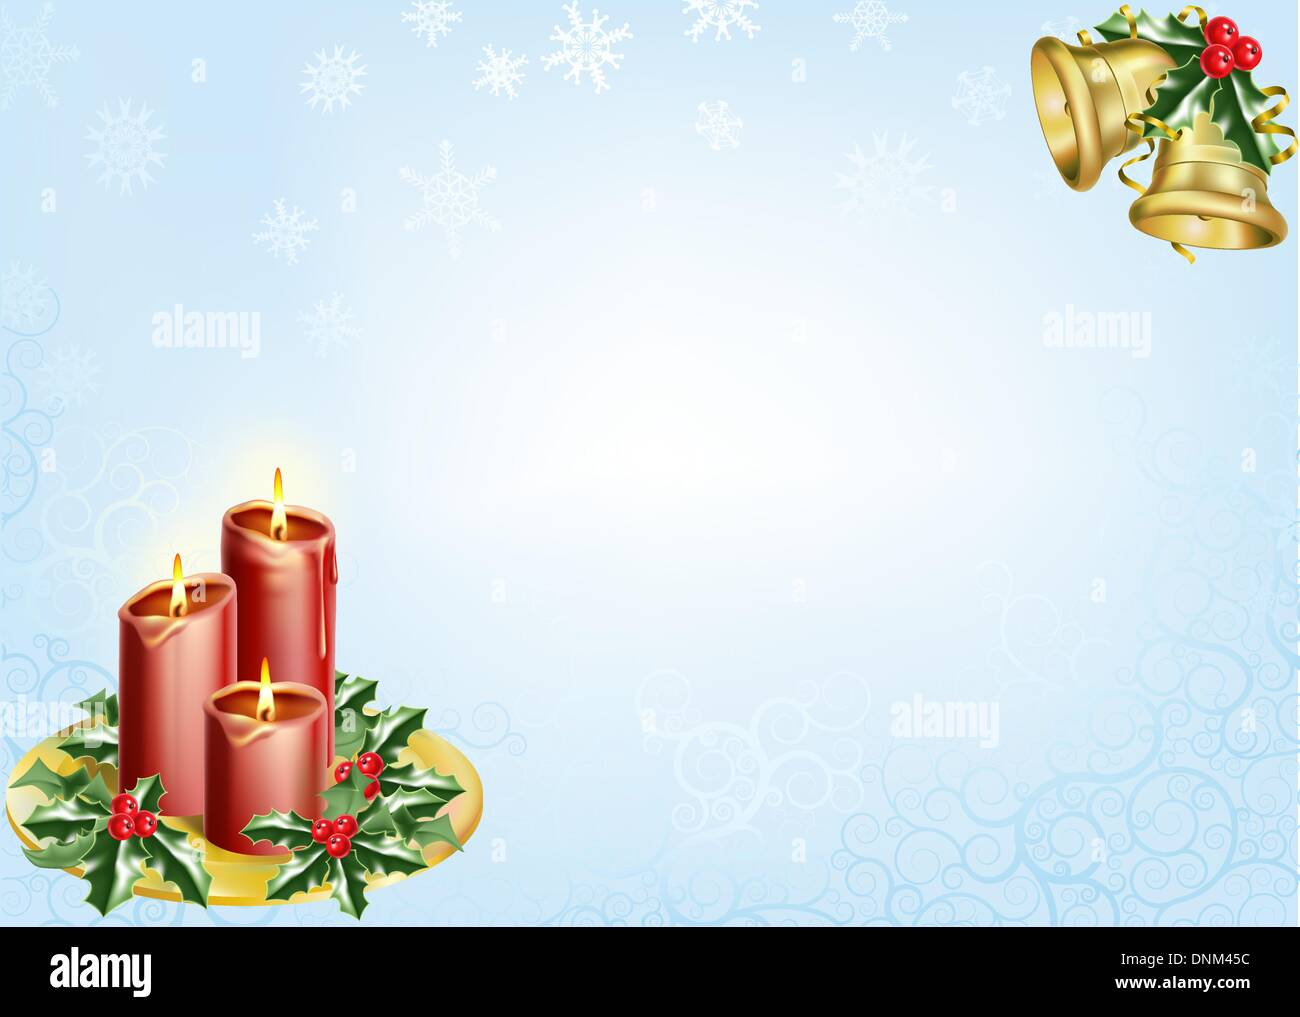 a christmas background with candles, bells and holly. - Stock Image